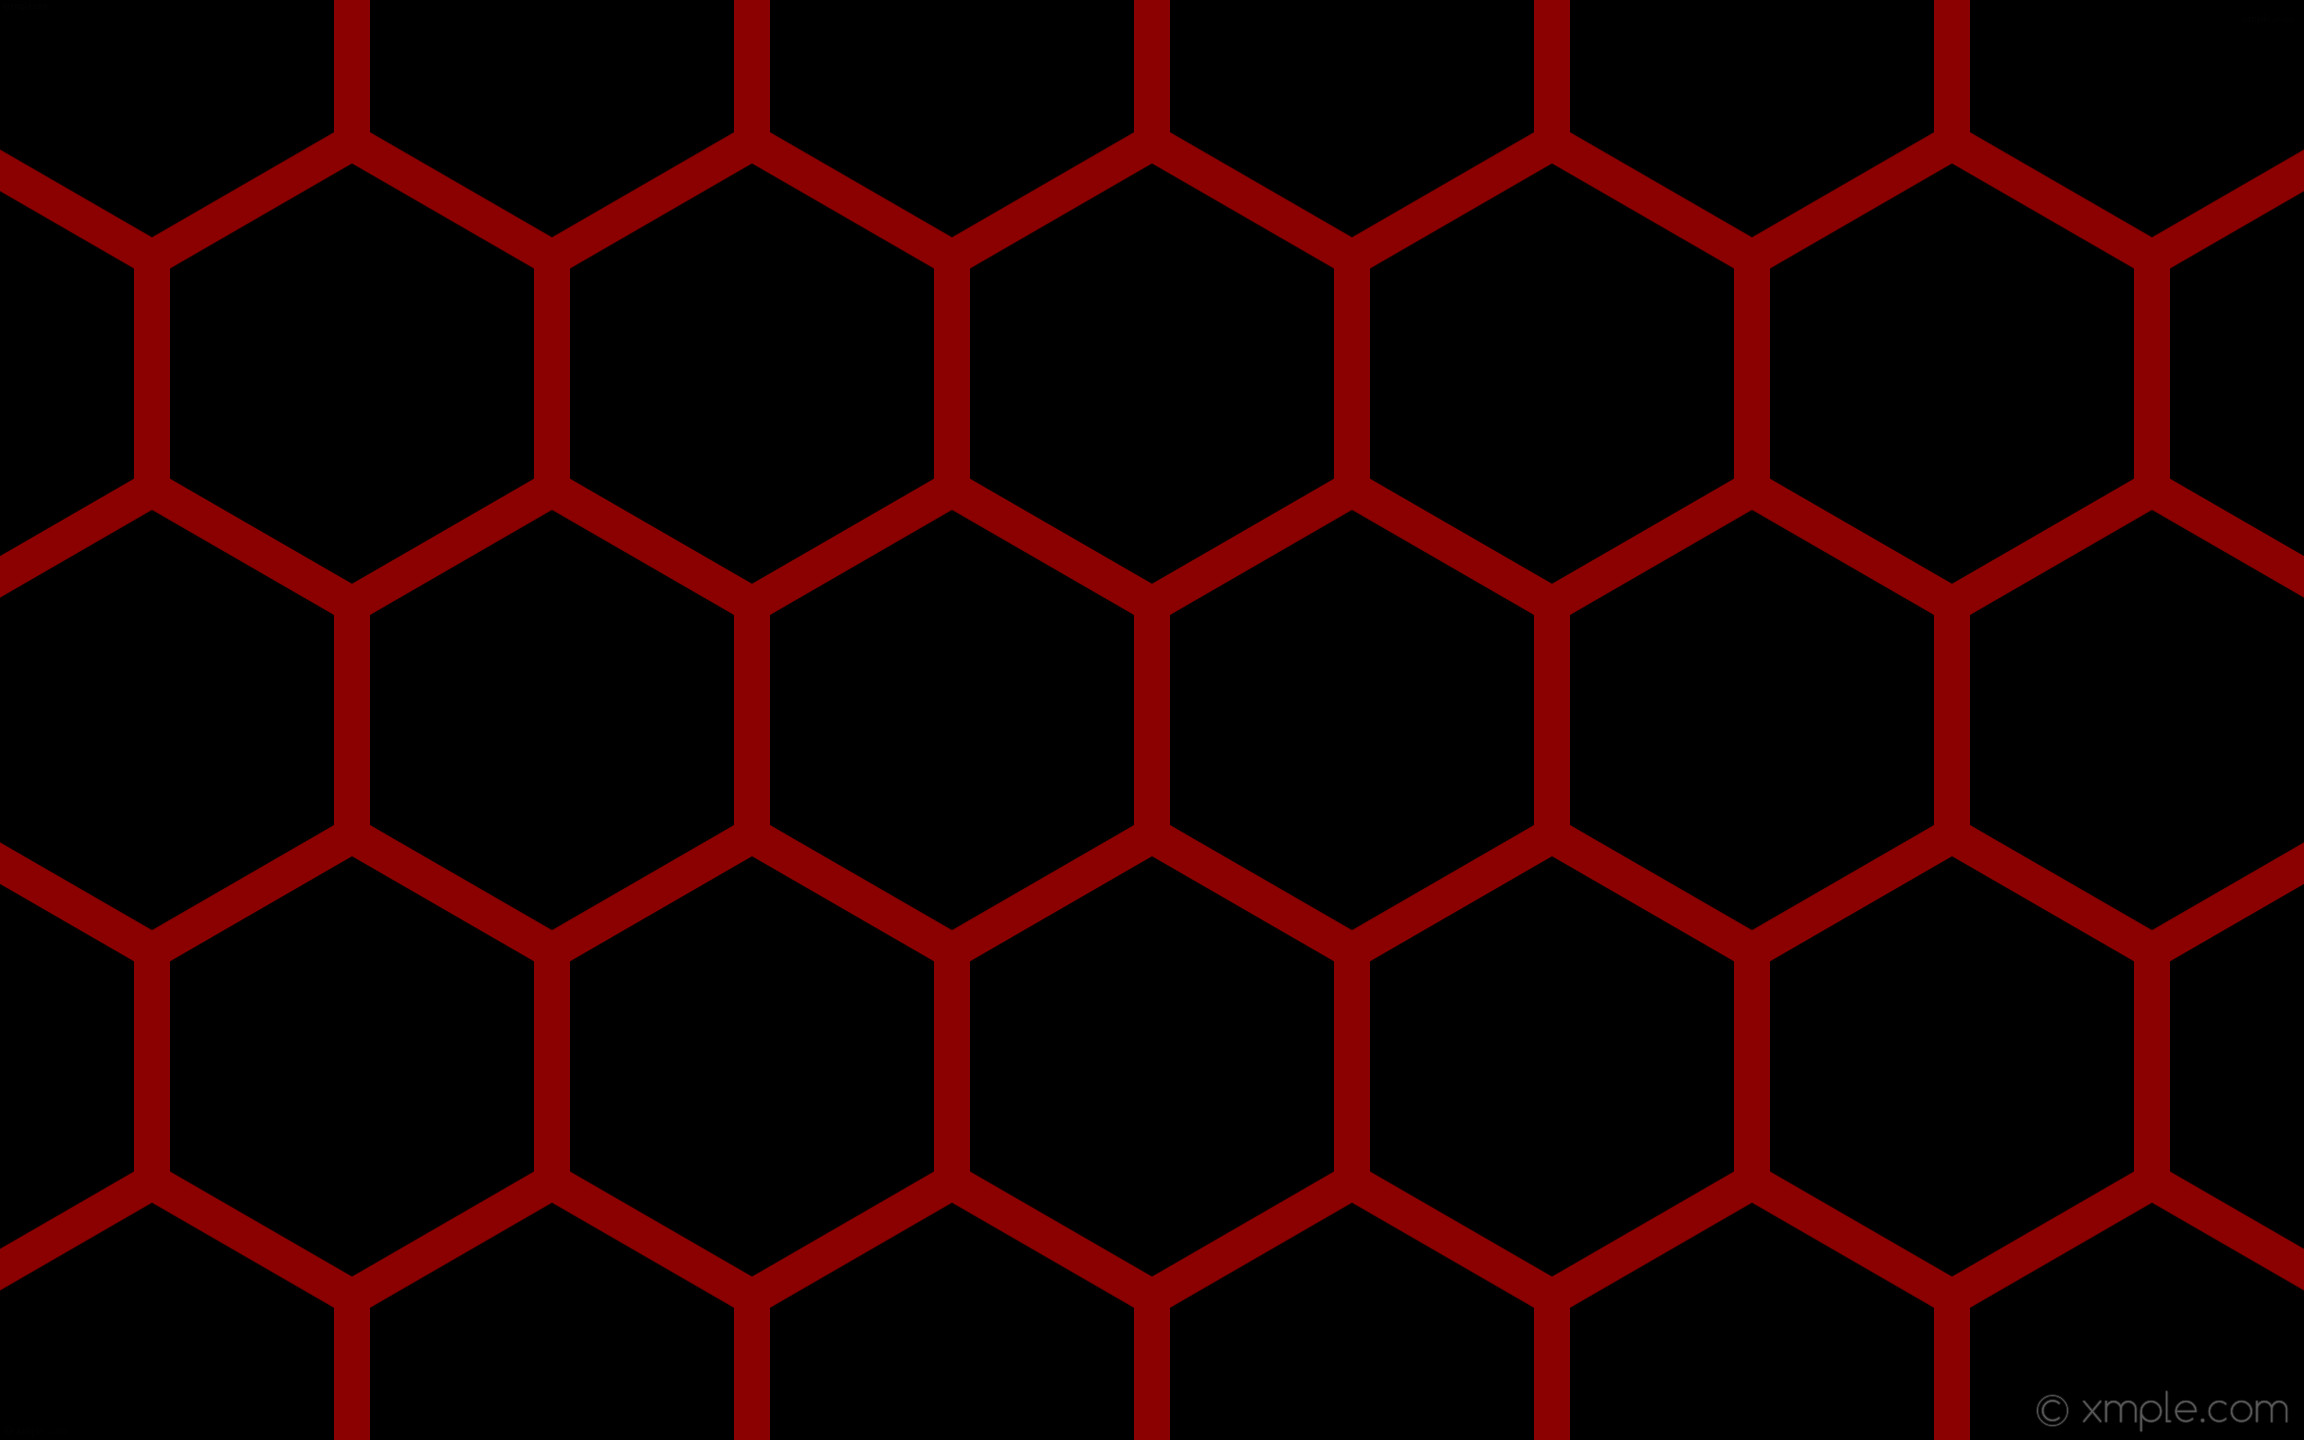 wallpaper beehive honeycomb black red hexagon dark red #000000 #8b0000 0°  36px 400px